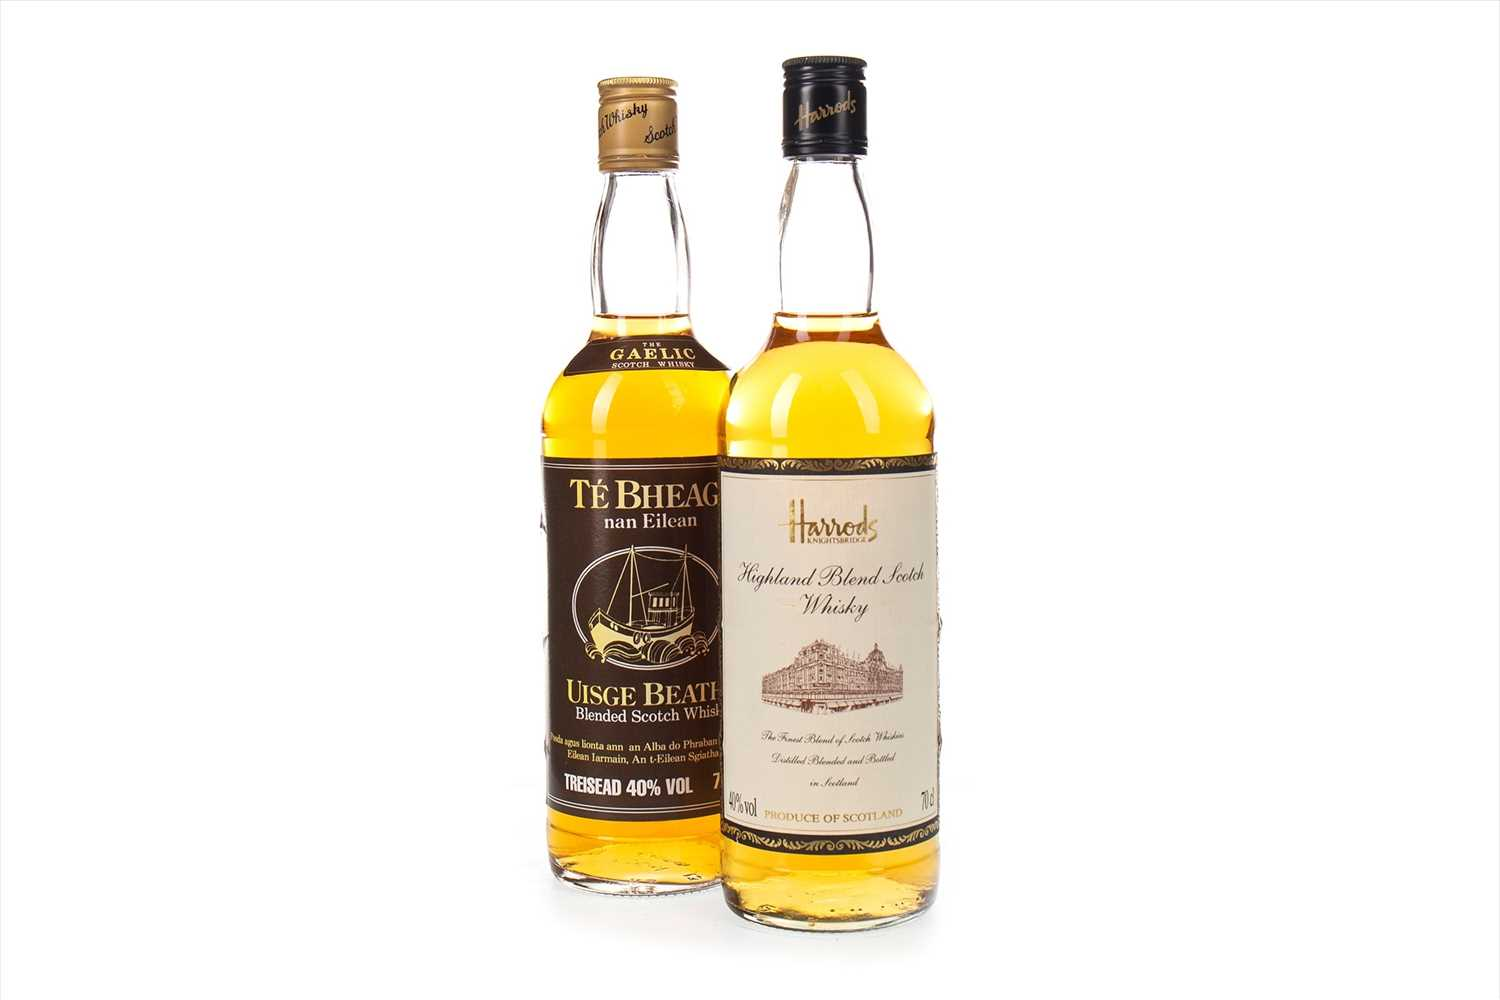 Lot 414-TE BHEAG AND HARRODS HIGHLAND BLEND